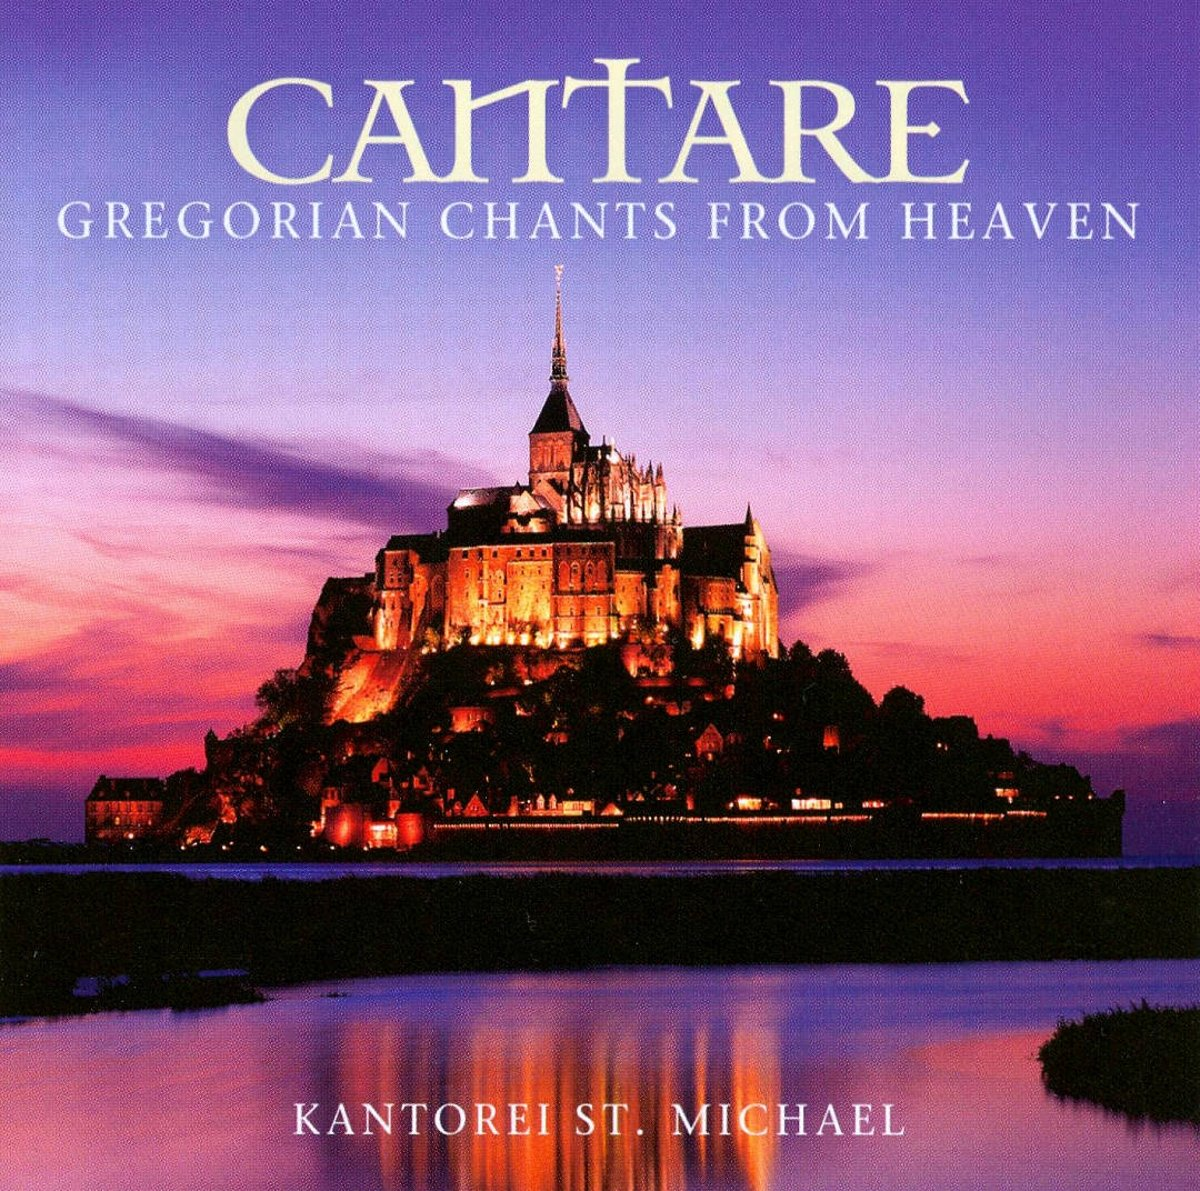 Kantorei St. Michael Kantorei St. Michael. Cantare - Gregorian Chants From Heaven rodney st michael st michael rodney sync my world thief s honor ga sk paperback edition